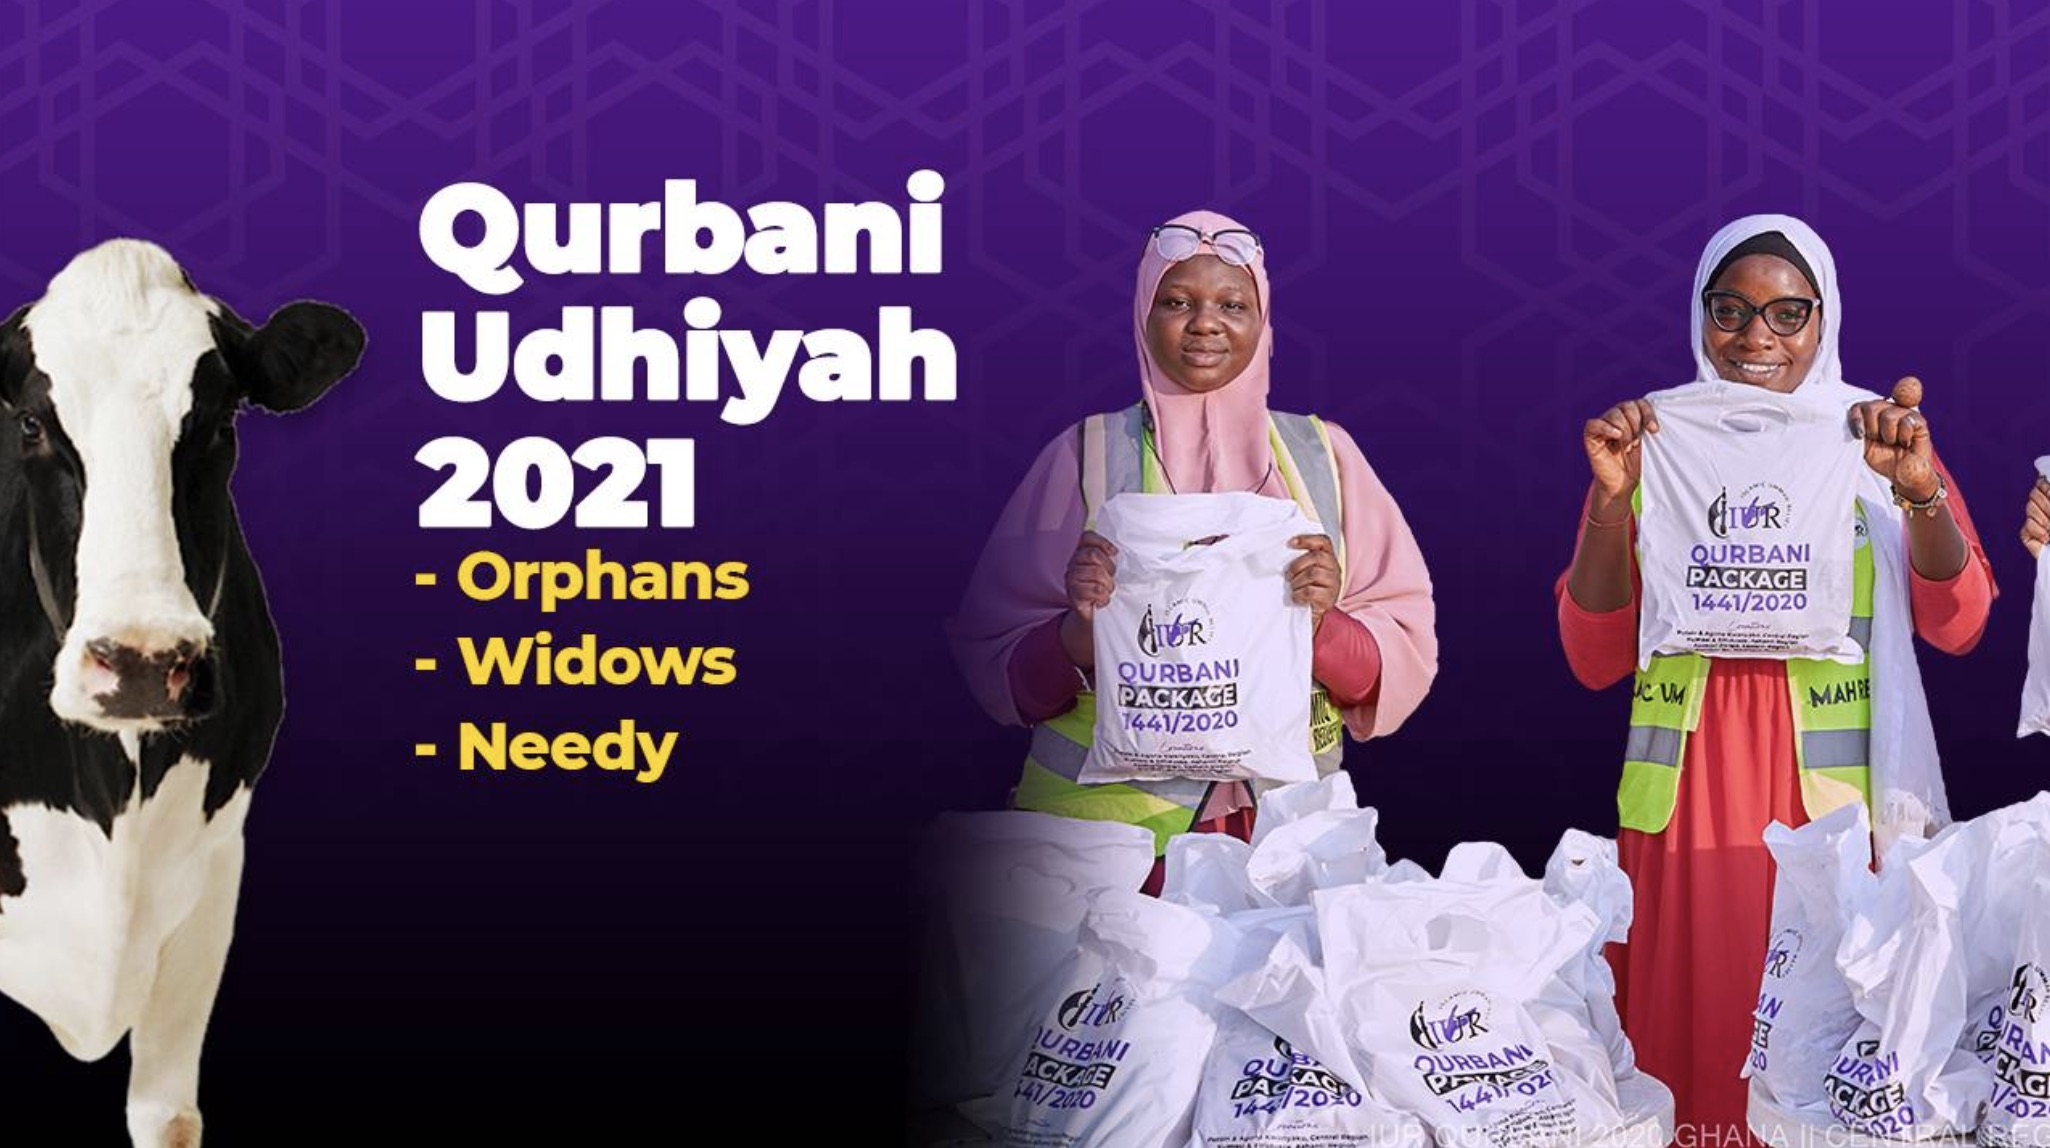 Qurbani Udhiyah for Orphans, Widows and Needy in Africa